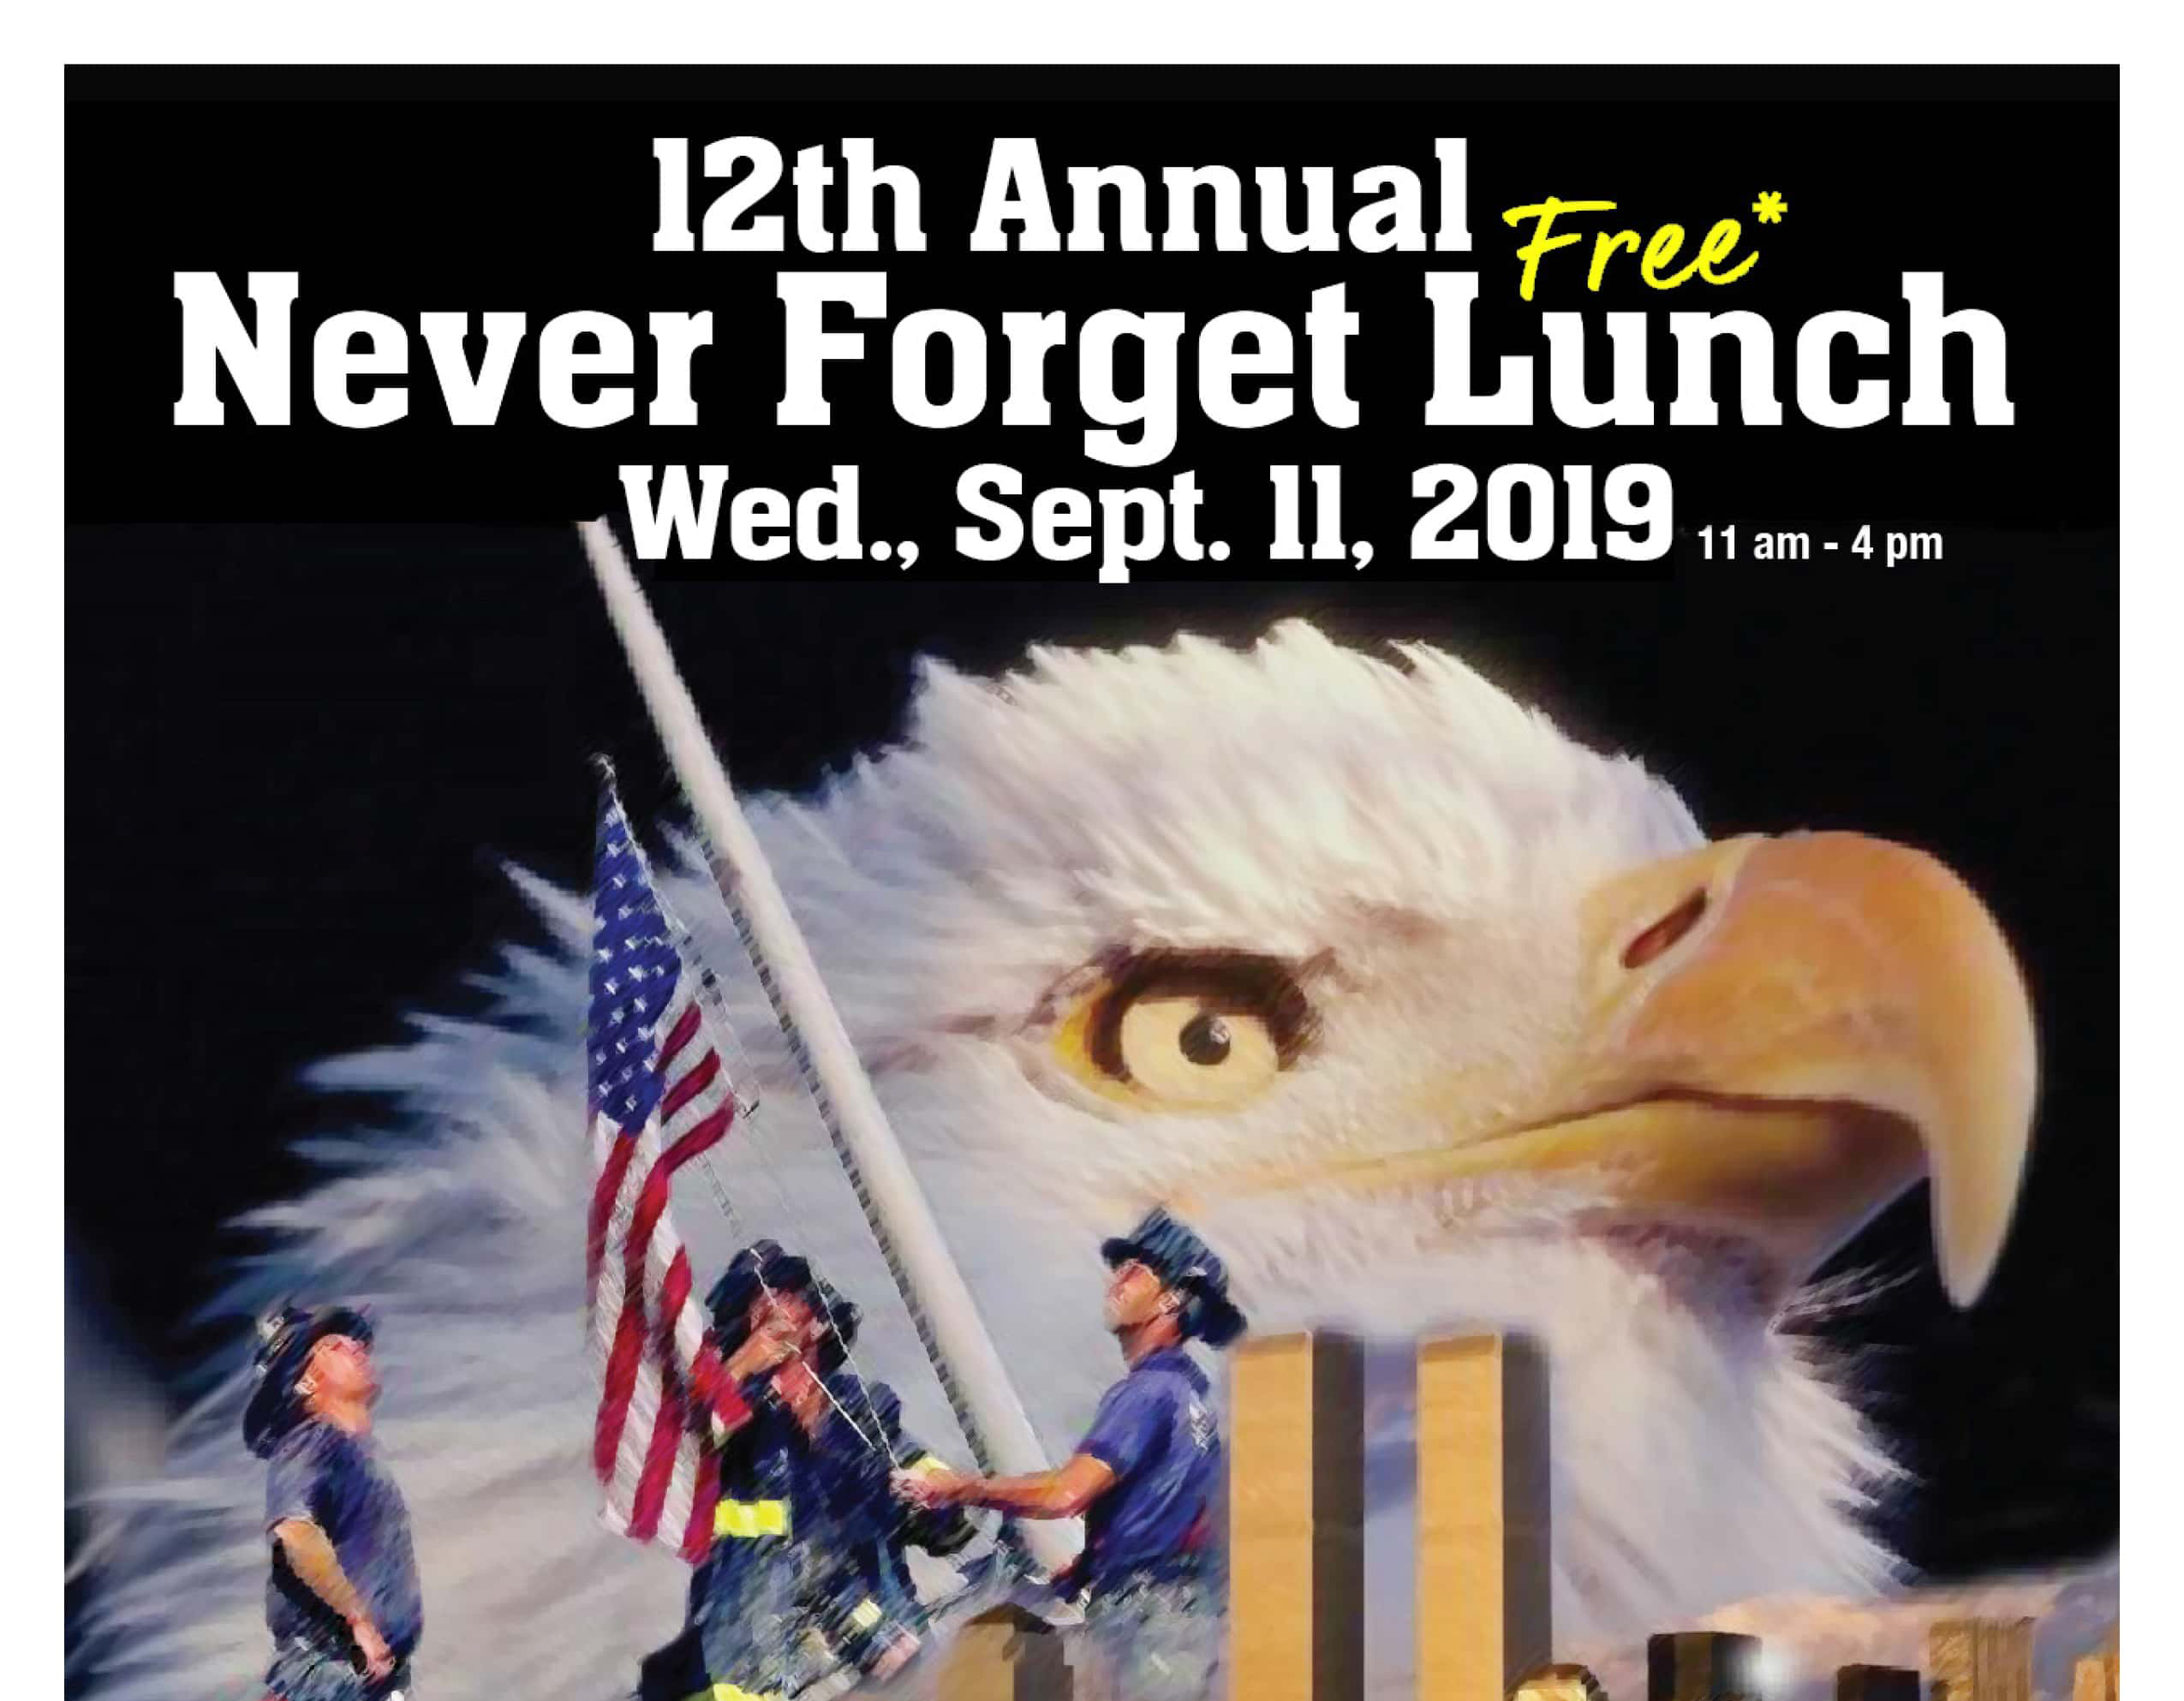 Never Forget Lunch Poster